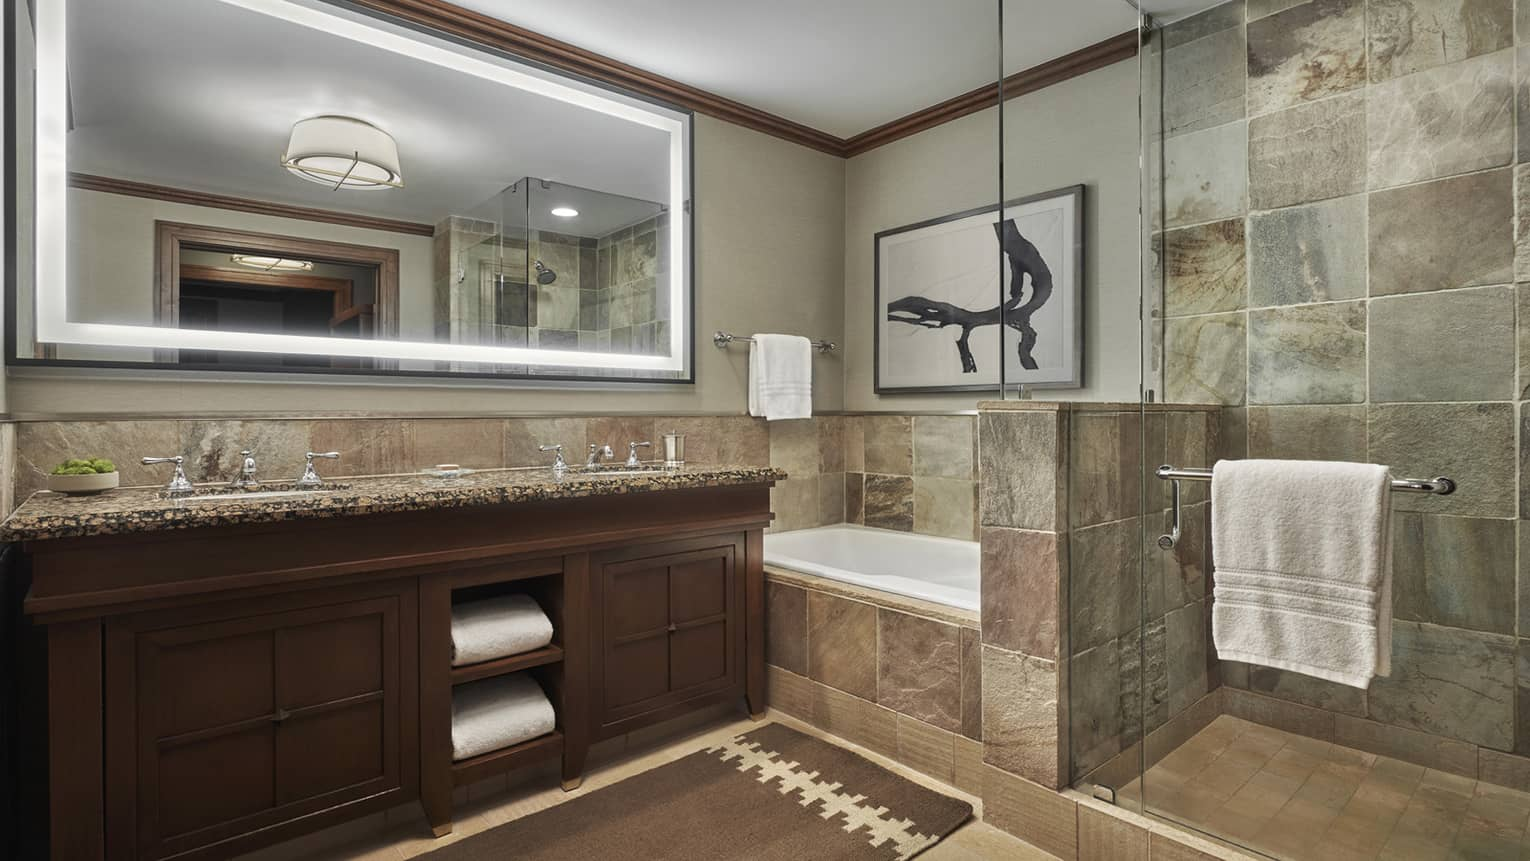 A tiled bathroom, with a double vanity, large lighted mirror and a shower and tub separated by a glass partition